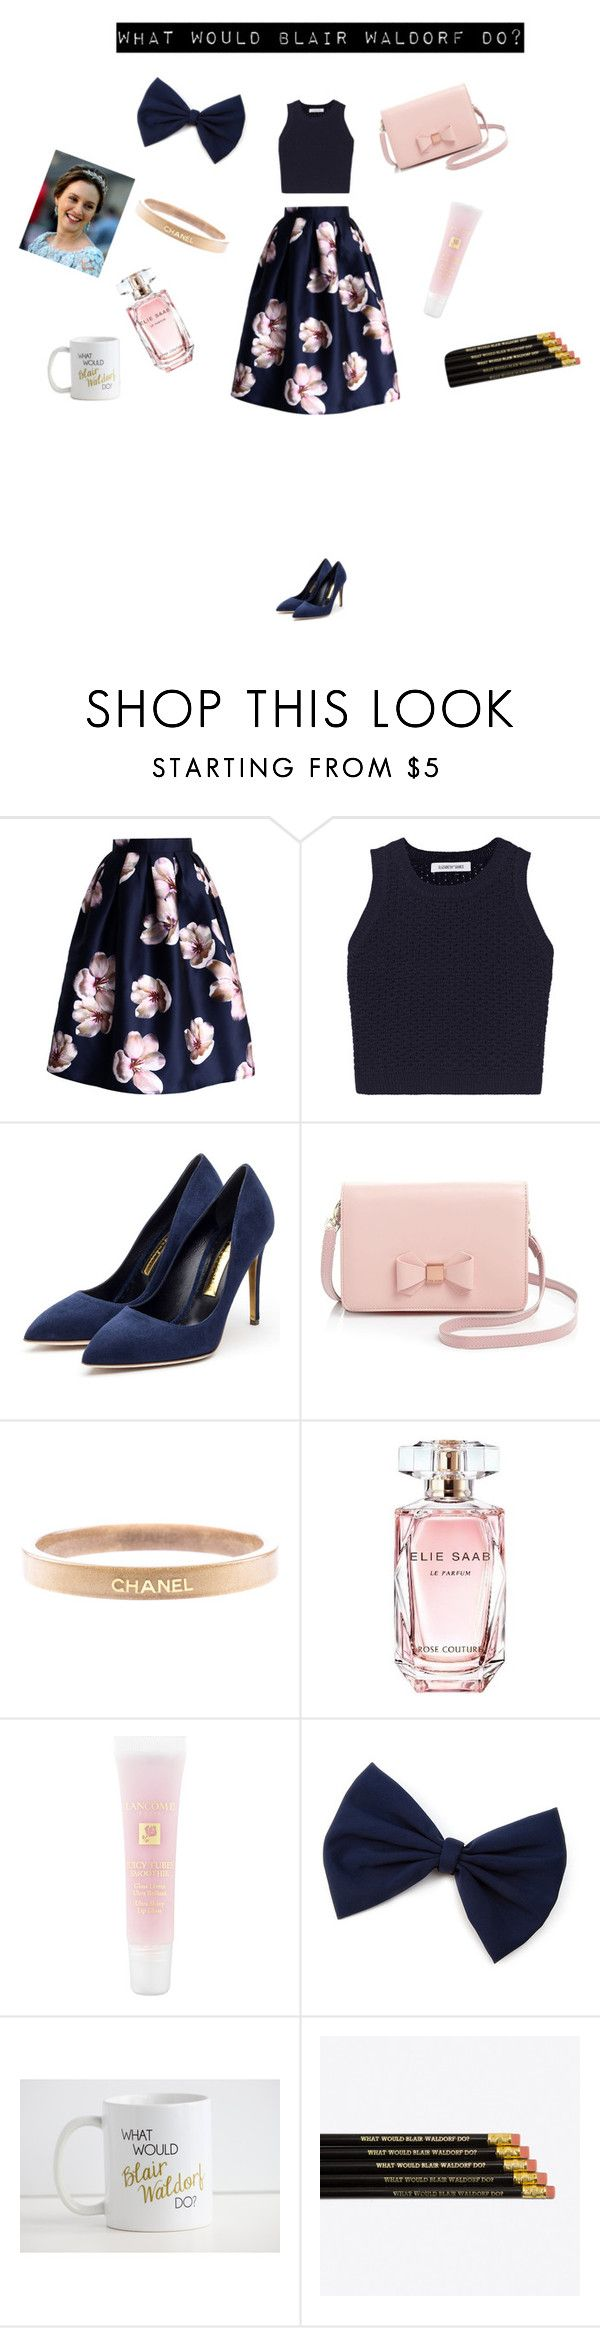 """""""Blair Waldorf"""" by jxfxkx ❤ liked on Polyvore featuring Chicwish, Elizabeth and James, Rupert Sanderson, Ted Baker, Chanel, Elie Saab, Lancôme, GetTheLook, outfit and gossipgirl"""